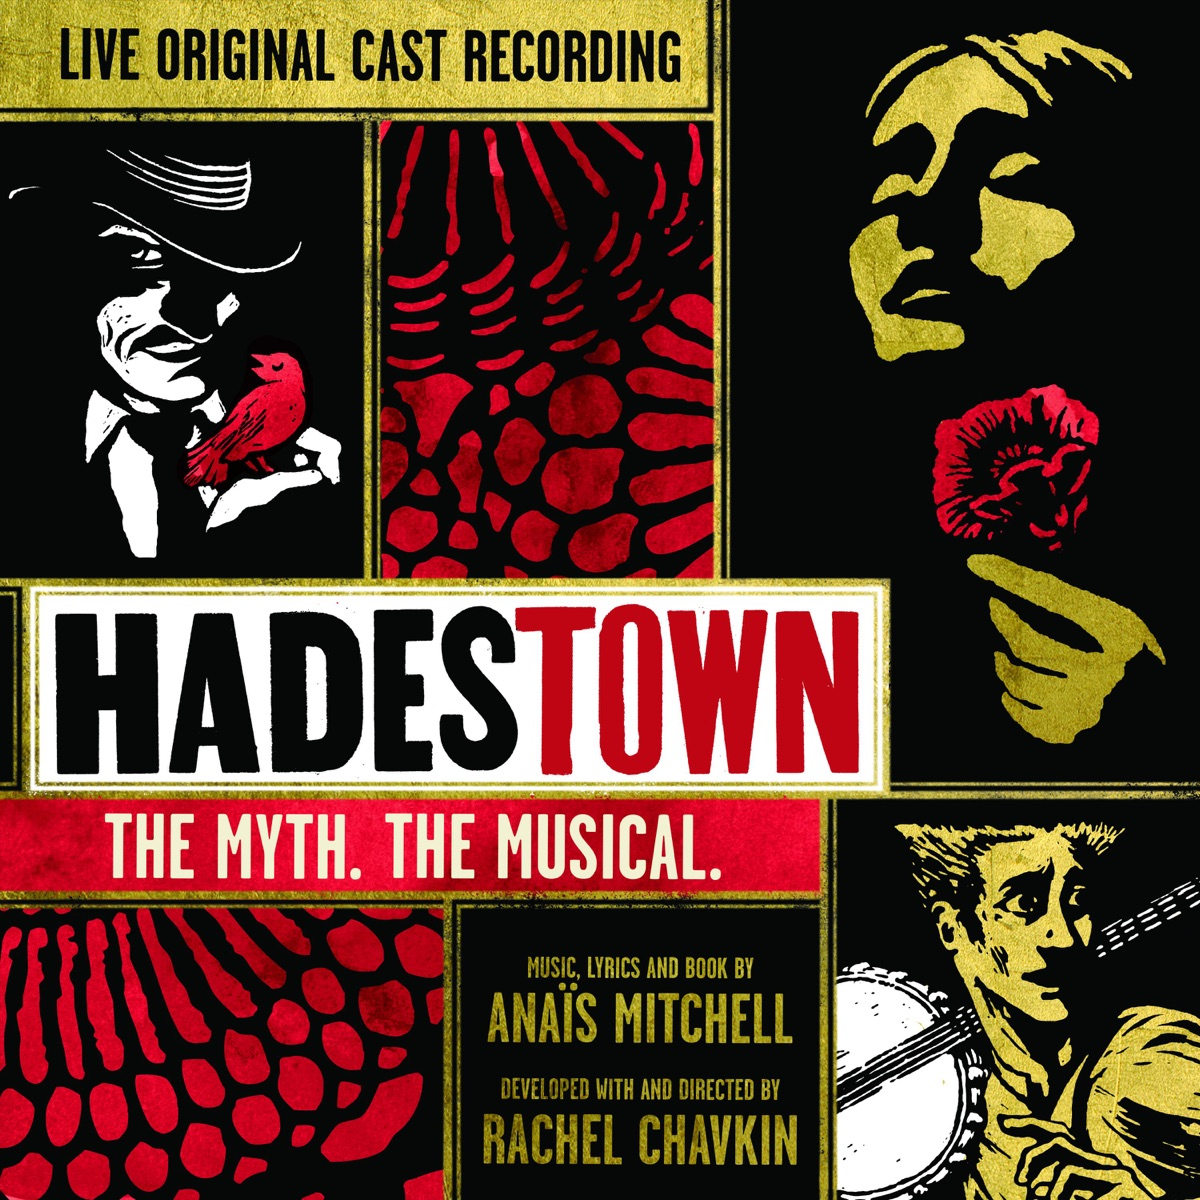 Hadestown The Myth The Musical Original Cast Recording Live Original Cast of Hadestown CD cover